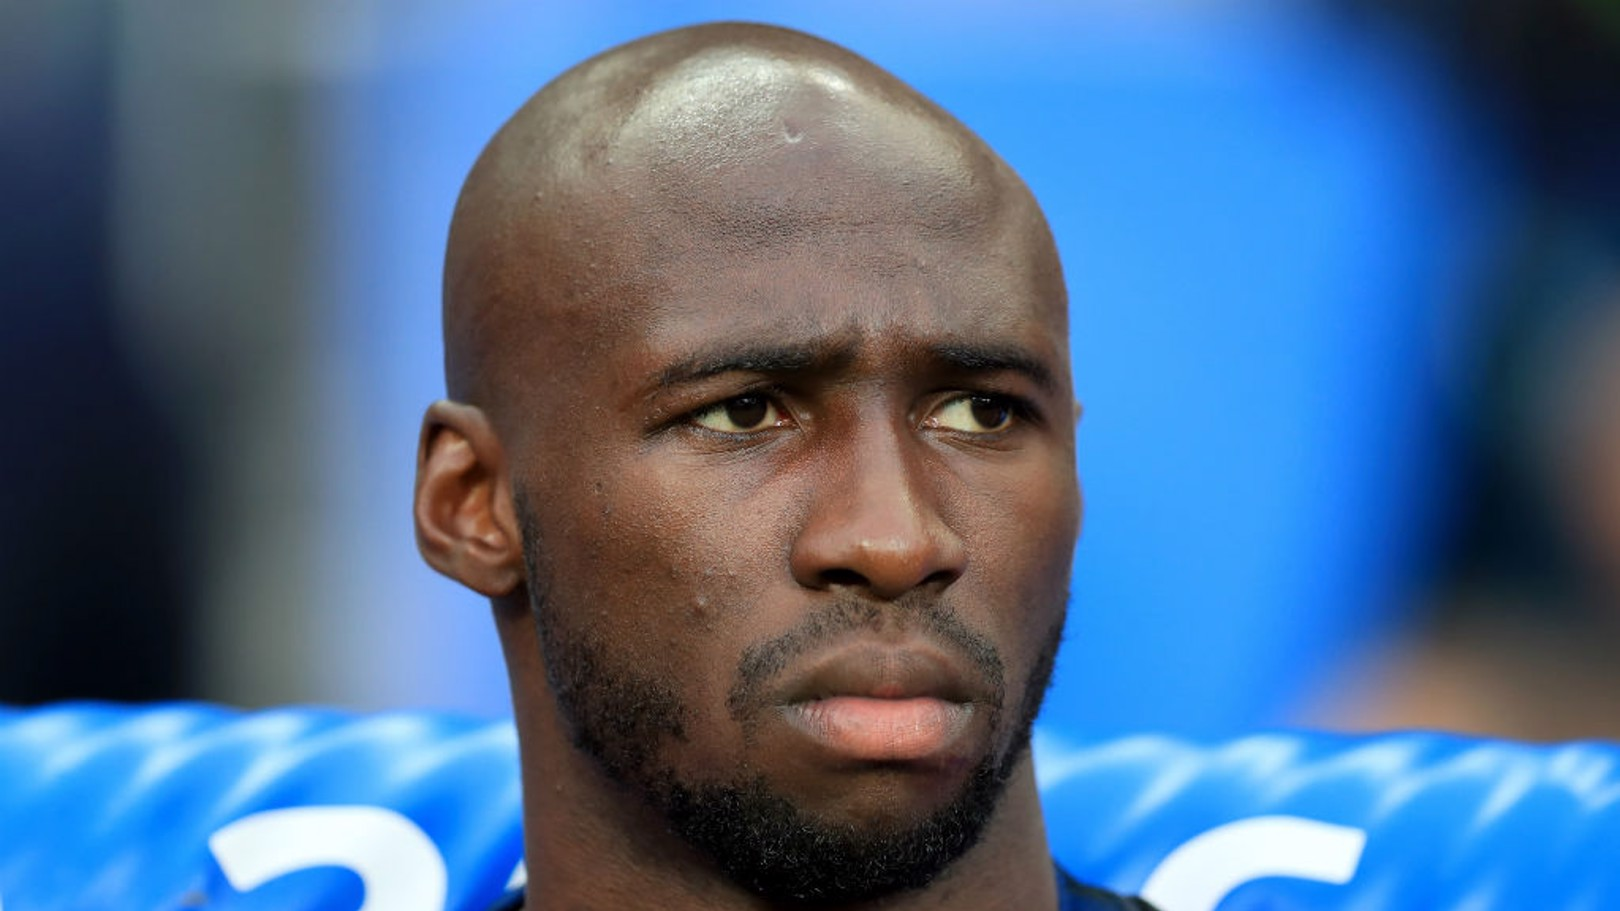 MANGALA: The French defender looks on from the bench during the Euro 2016 final